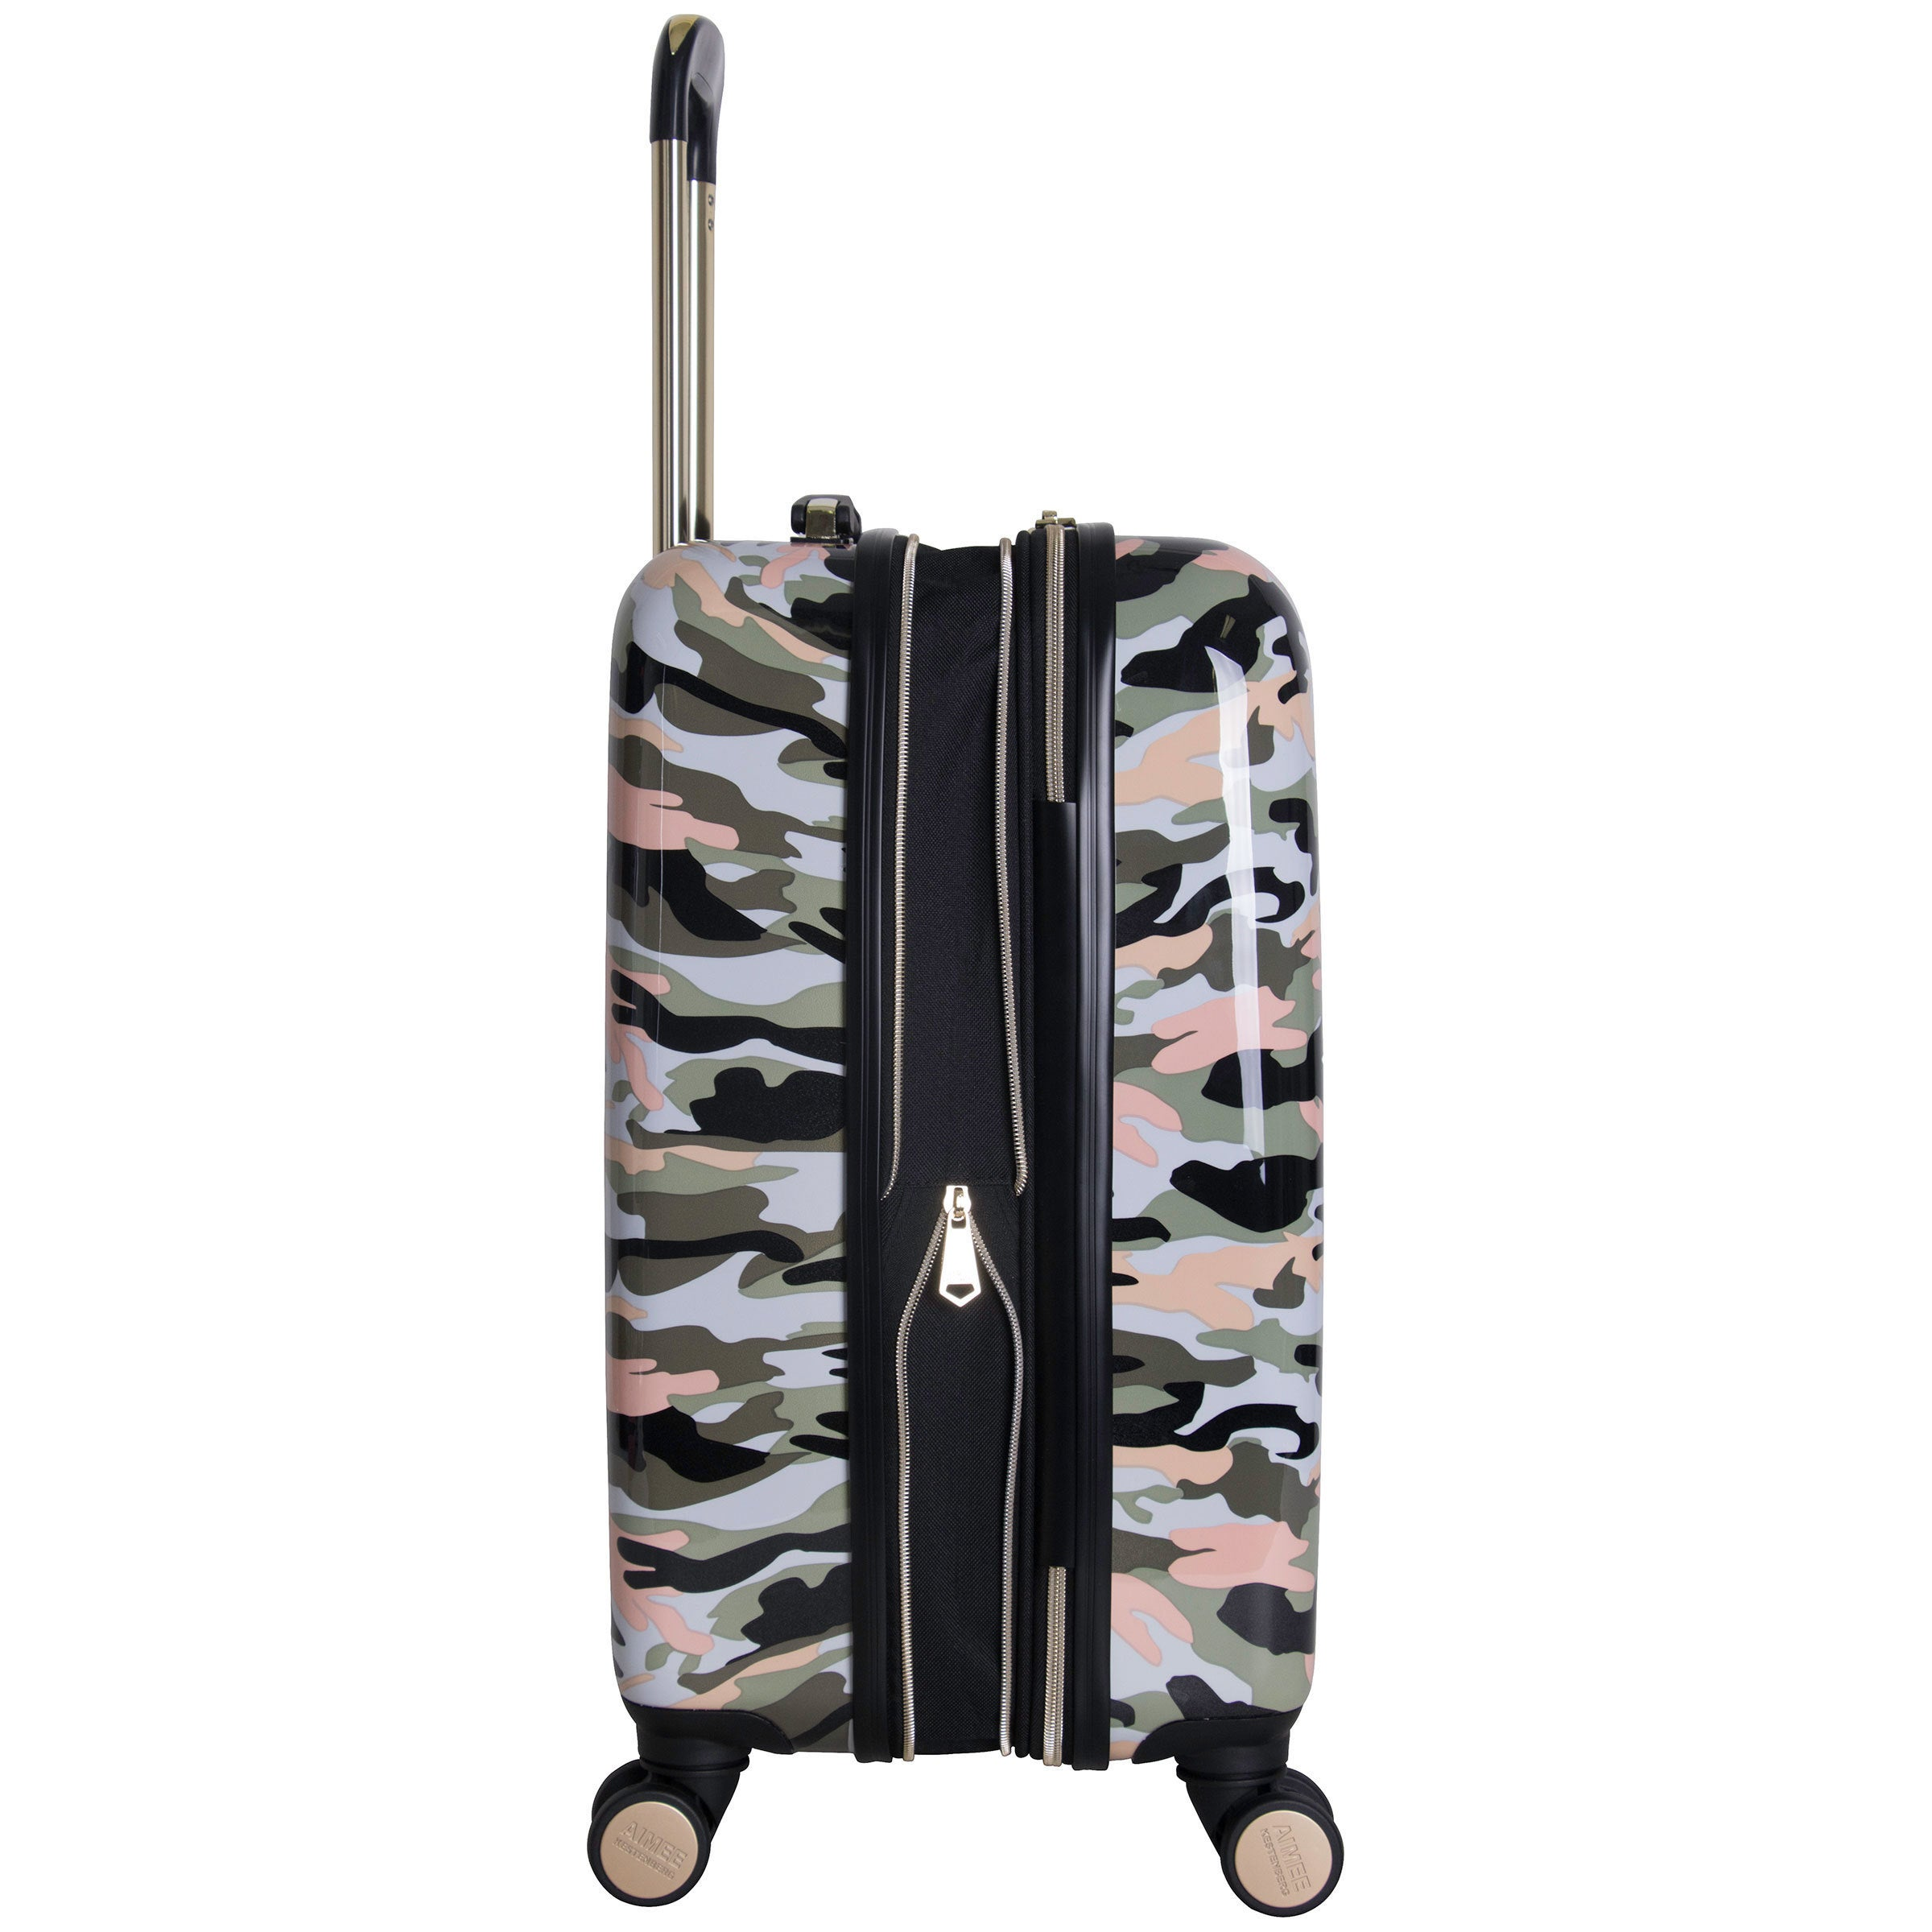 Shop Aimee Kestenberg Sergeant Collection 20-inch Hardside Camo Printed  8-Wheel Expandable Carry-On Suitcase - Free Shipping Today - Overstock -  18029735 c4b7ad0438c